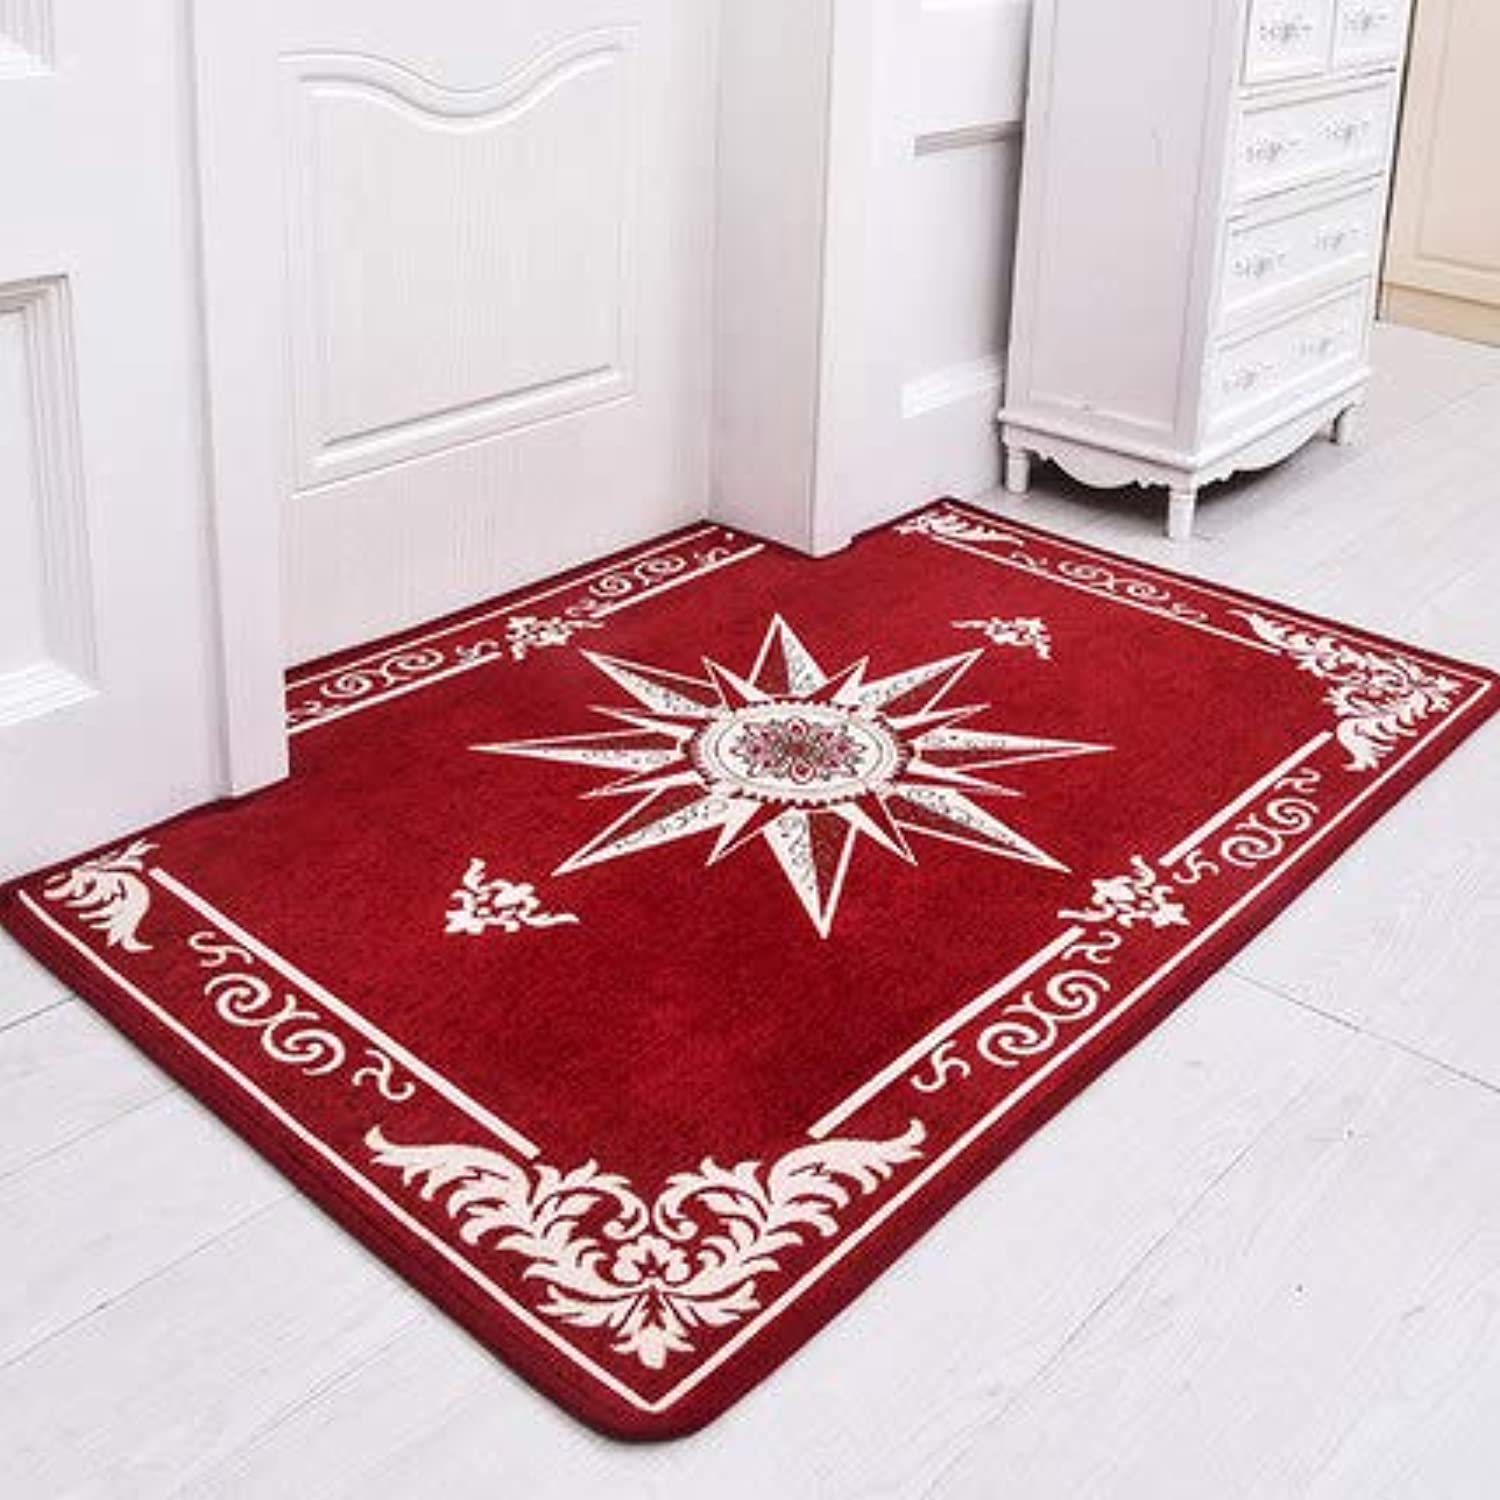 Doormat,Entrance Carpet The Carpet for The Living Room No-Slipping Mat Easy to Clean Durable-red 20x31inch